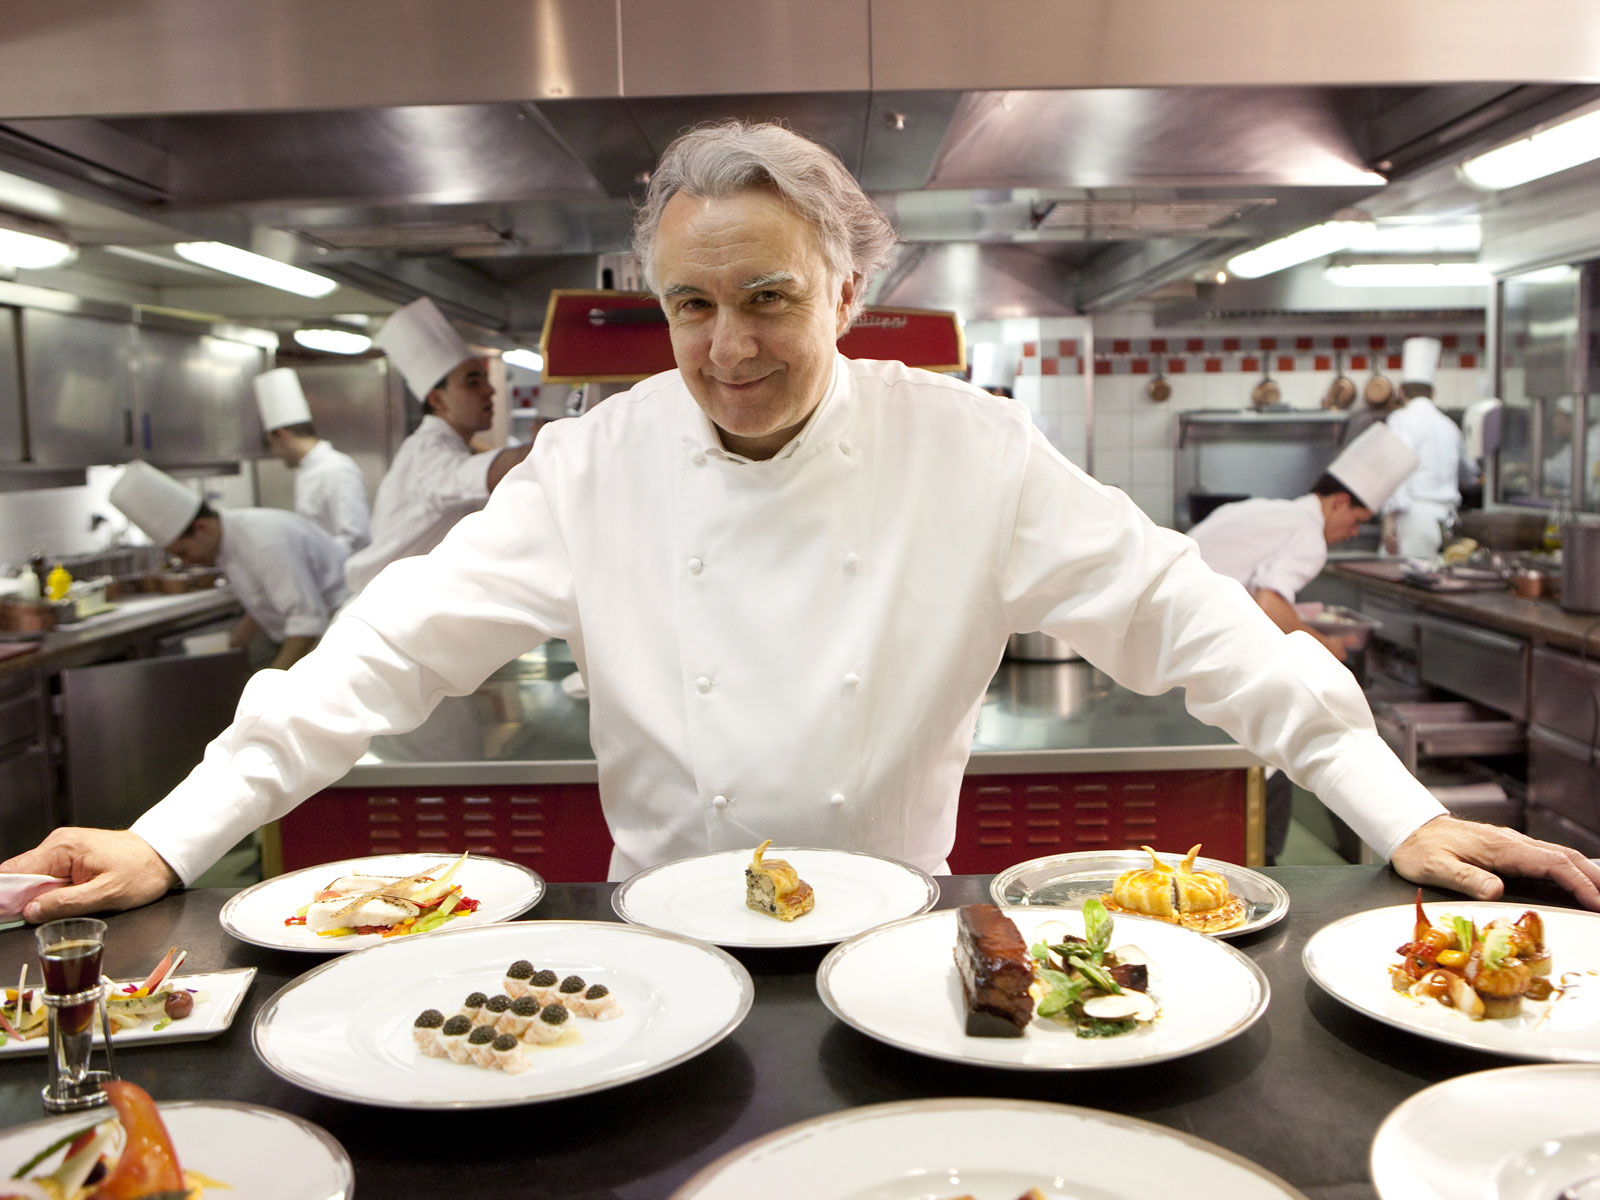 The Trailer for 'The Quest of Alain Ducasse' Will Make You Very Hungry